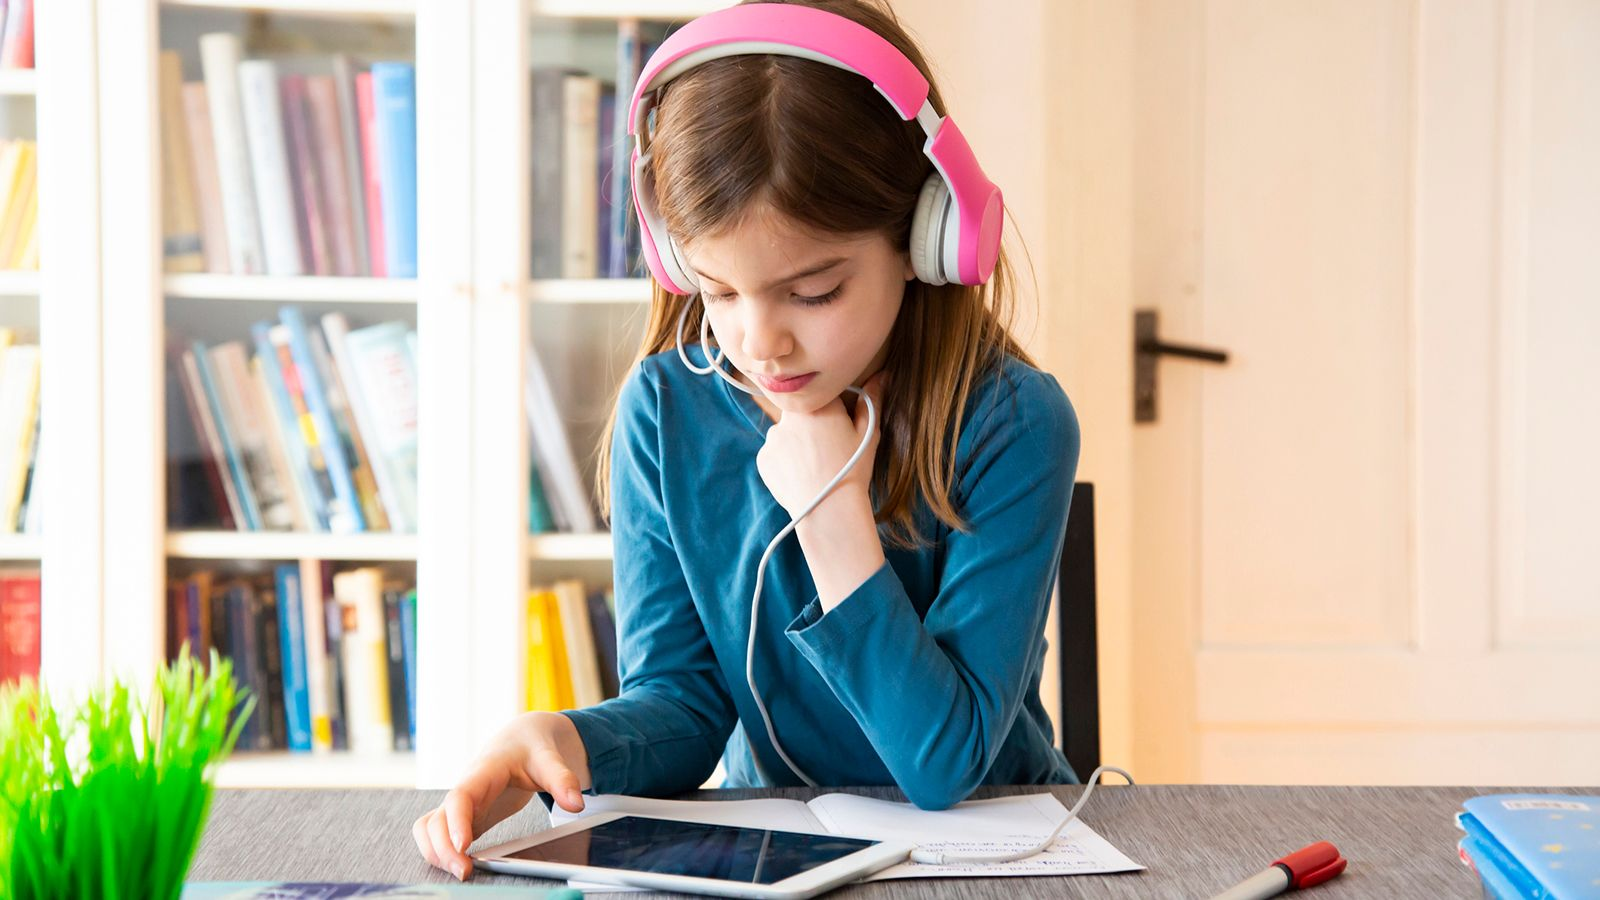 1019 young girl doing online learning through educational app 1147337312